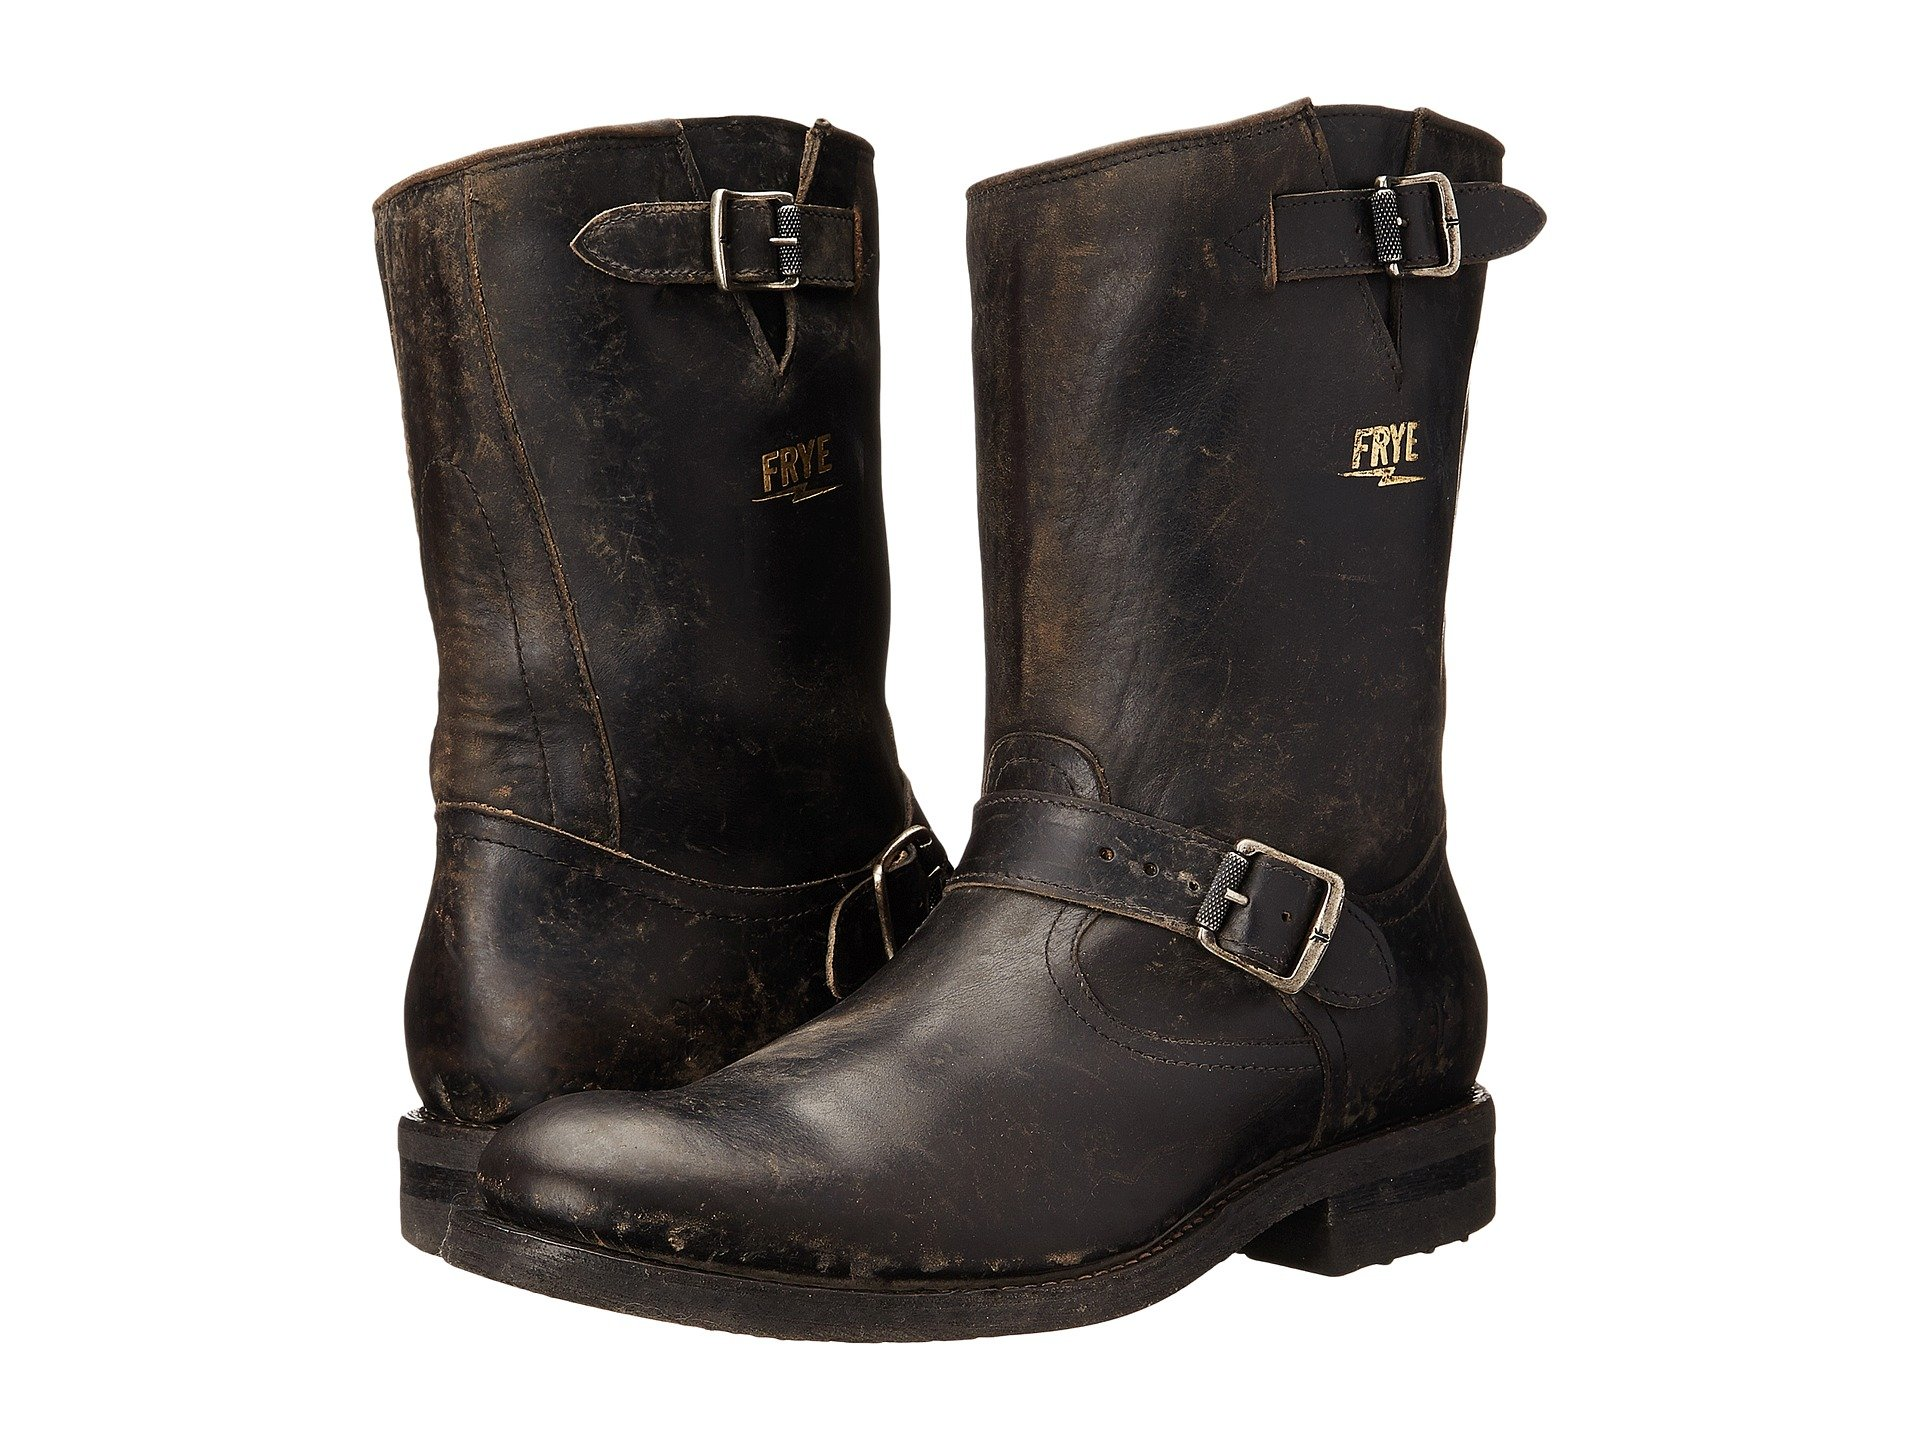 Womens Nine West Women's Officier Motorcycle Boot Outlet York Size 36